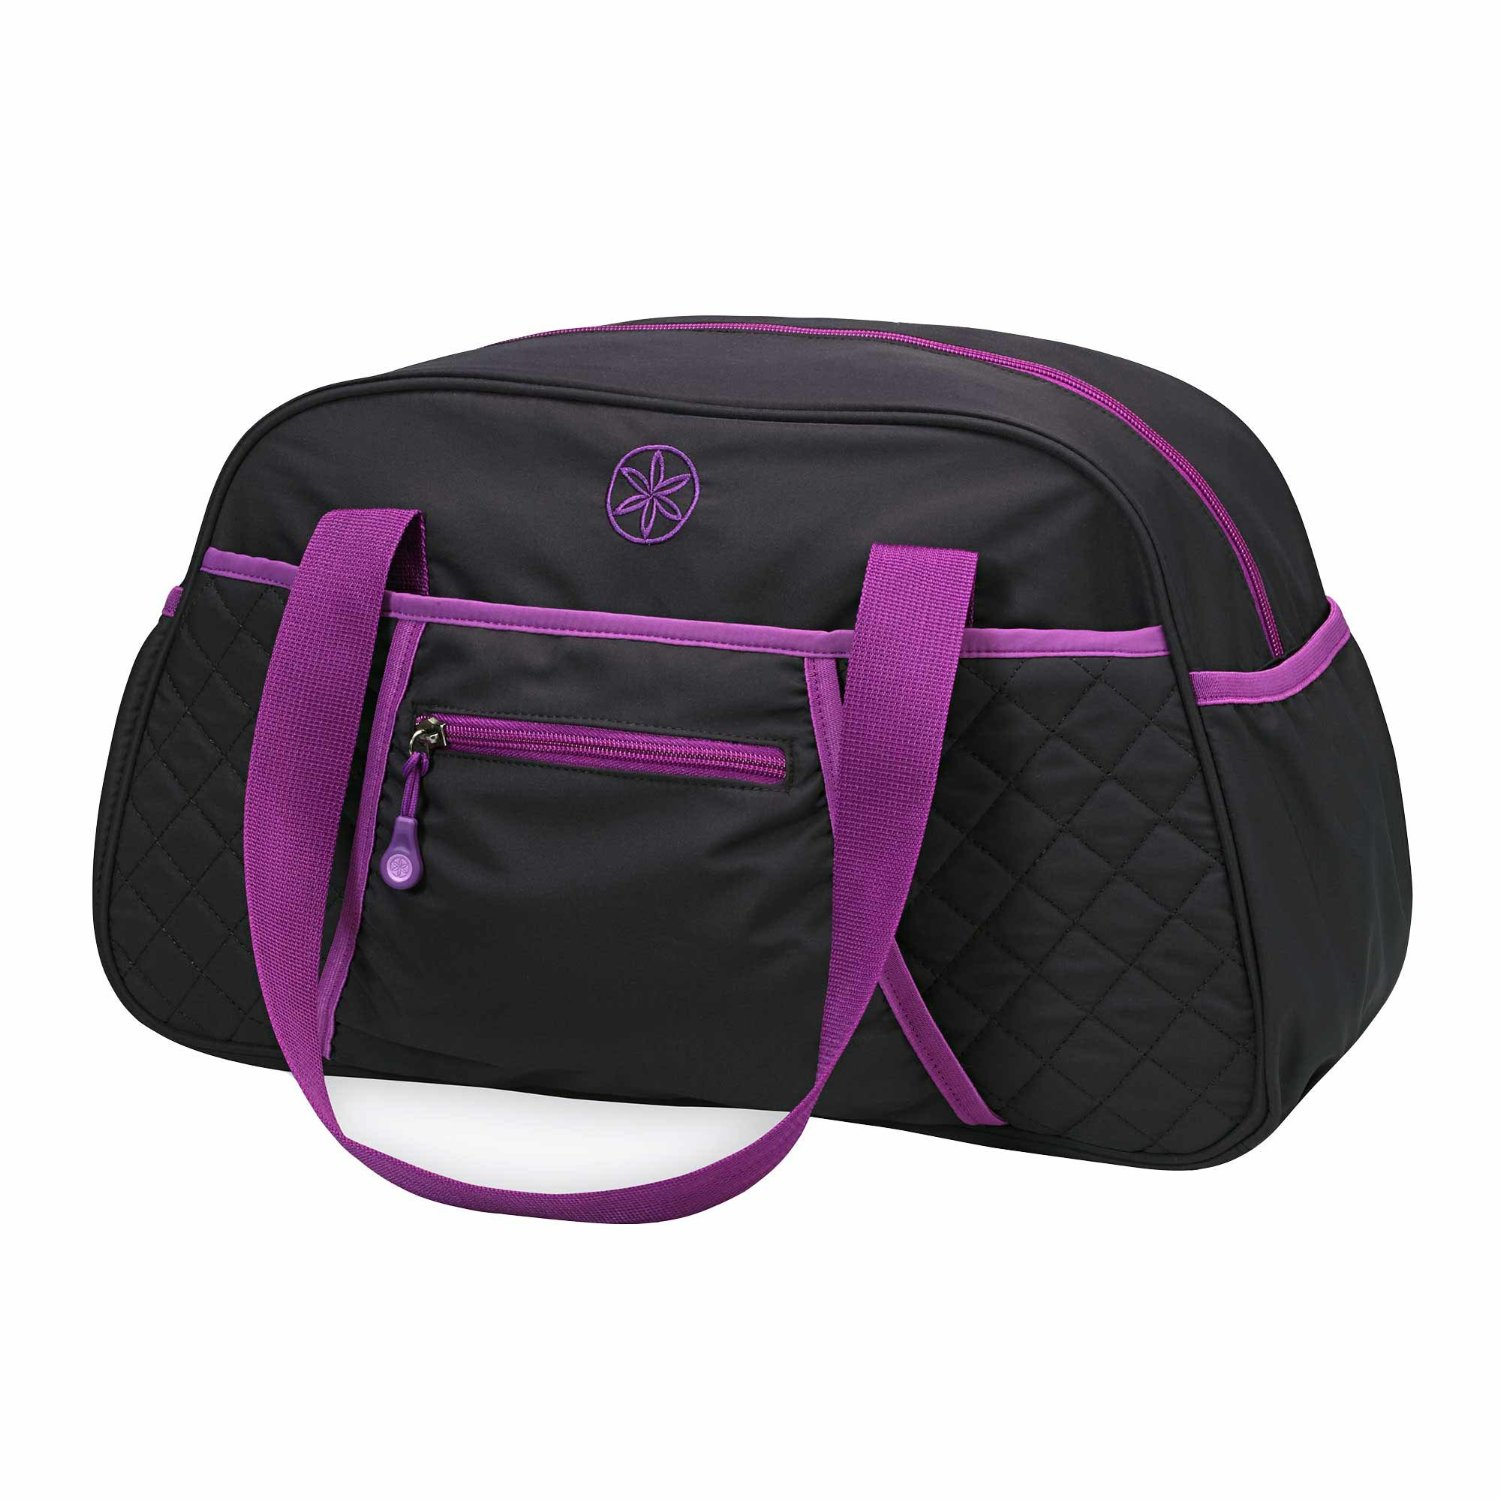 gaiam yoga sac tapis de duffle